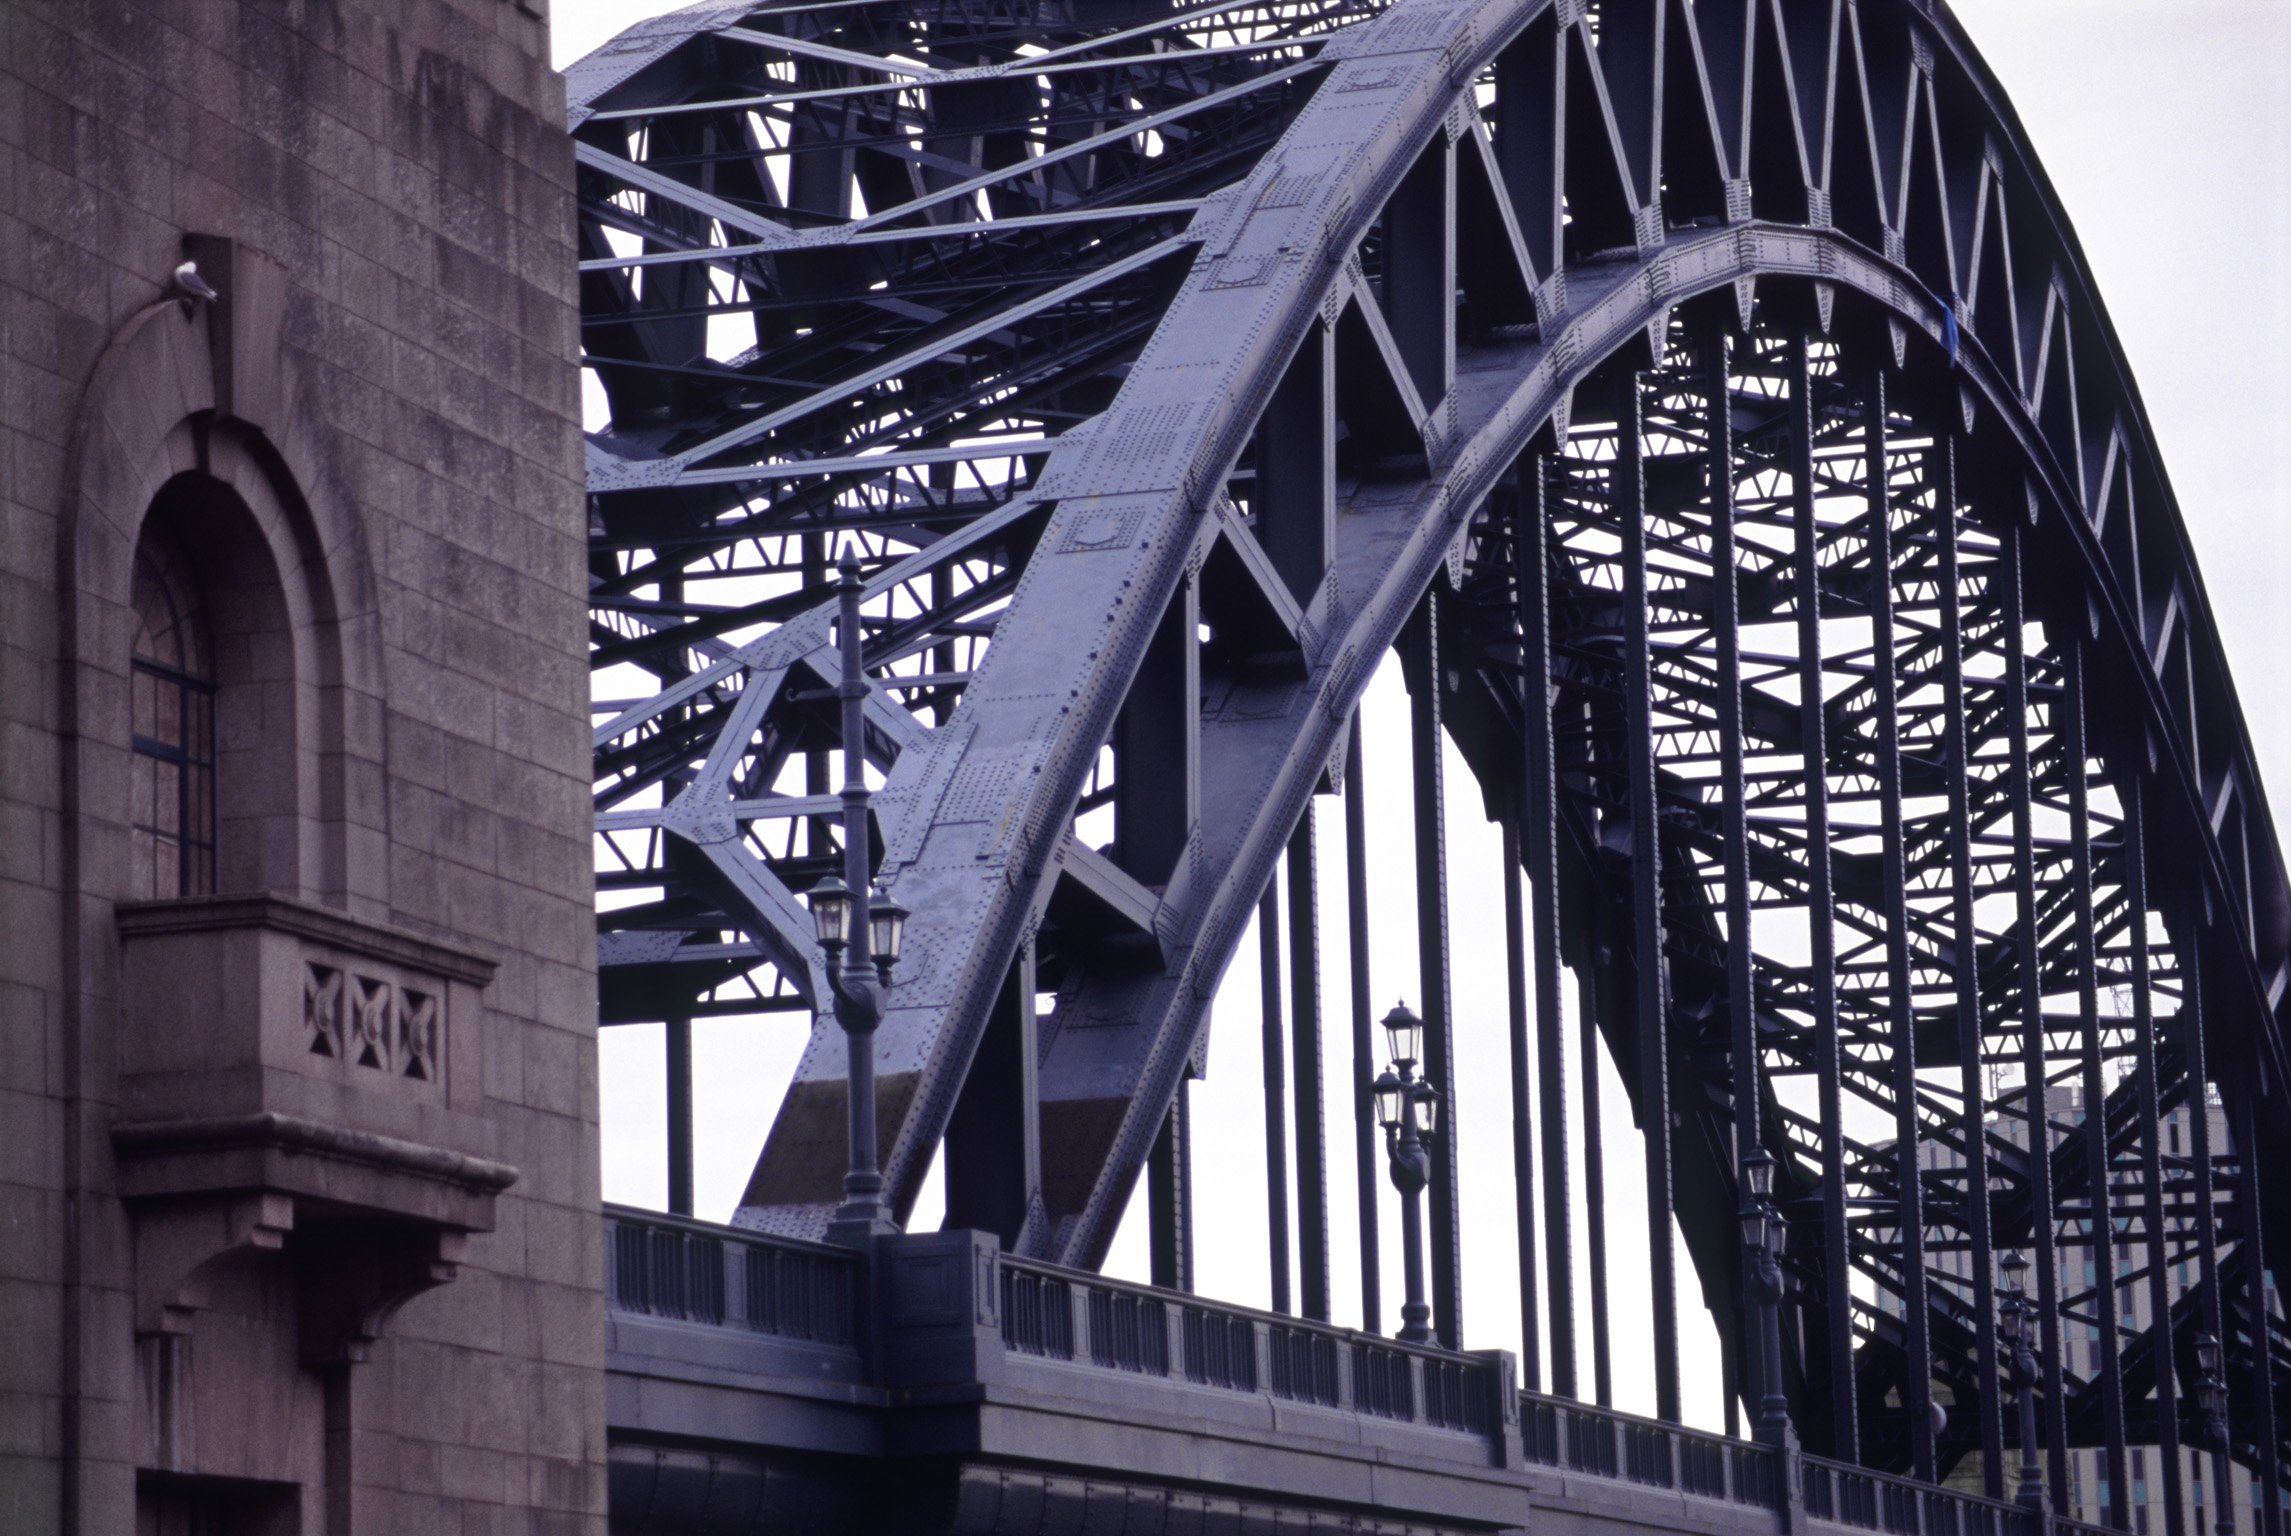 Detail of the steel span and iconic arch on the Tyne Bridge, Newcastle which crosses the River Tyne to connect Gateshead and Newcastle